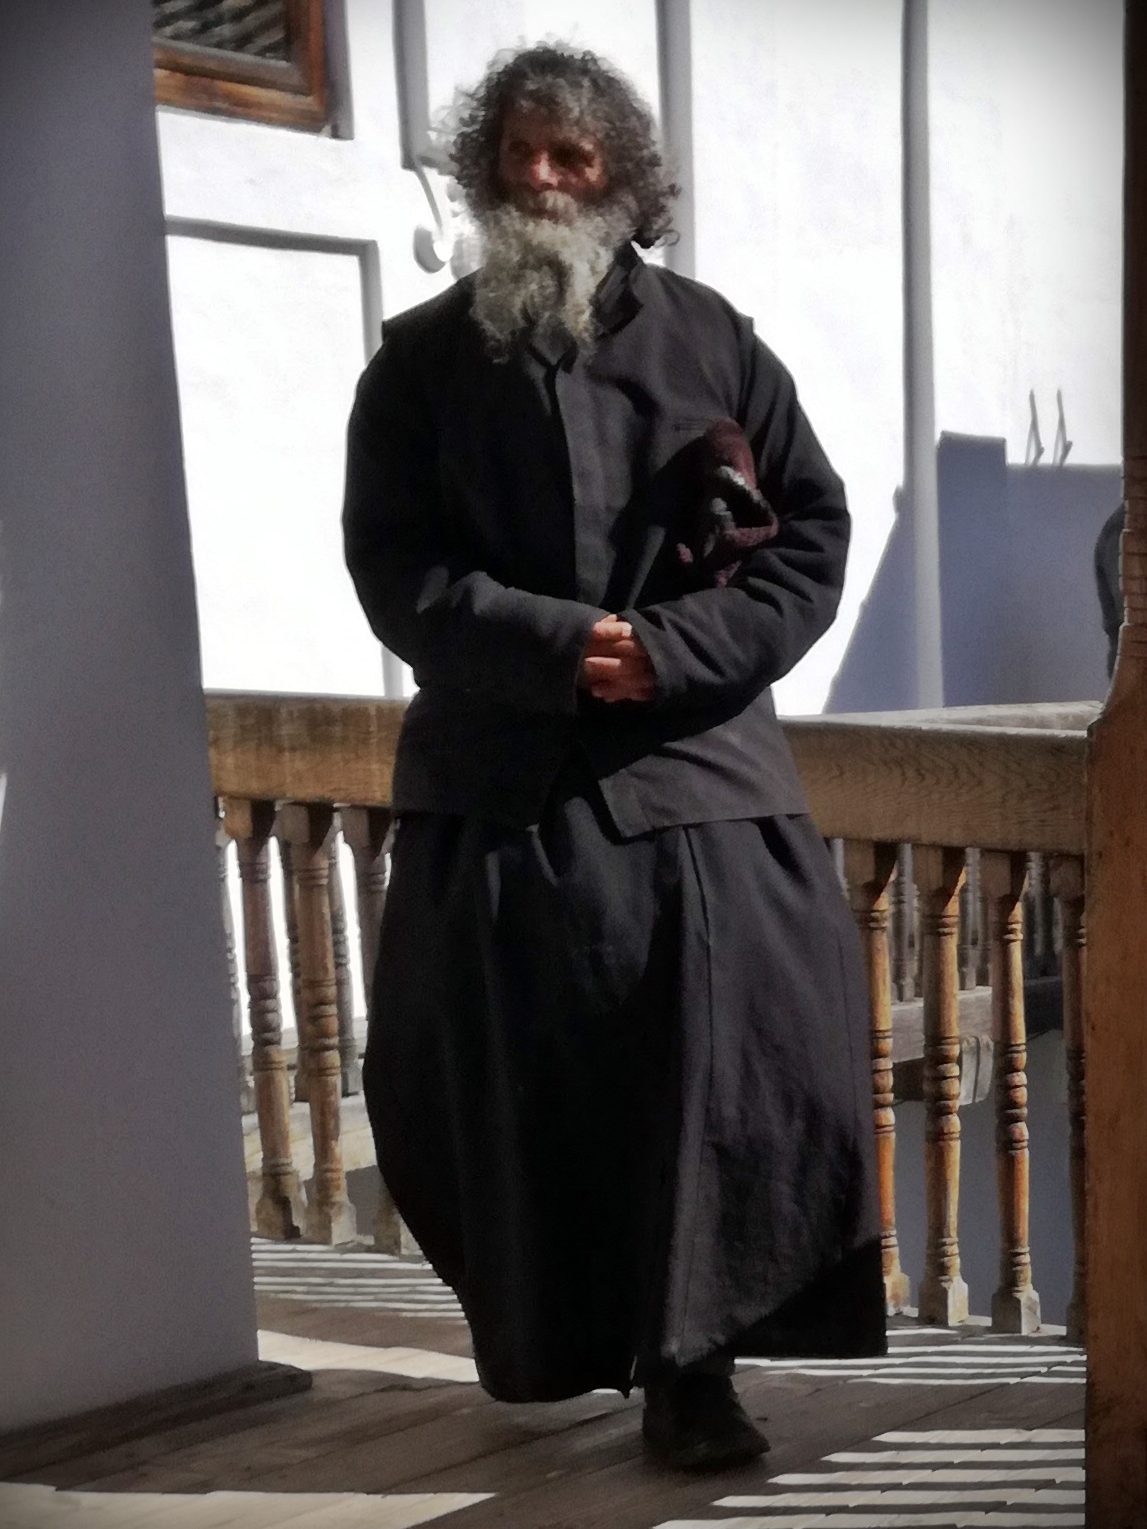 Monk from the Secu Monastery, Neamt County